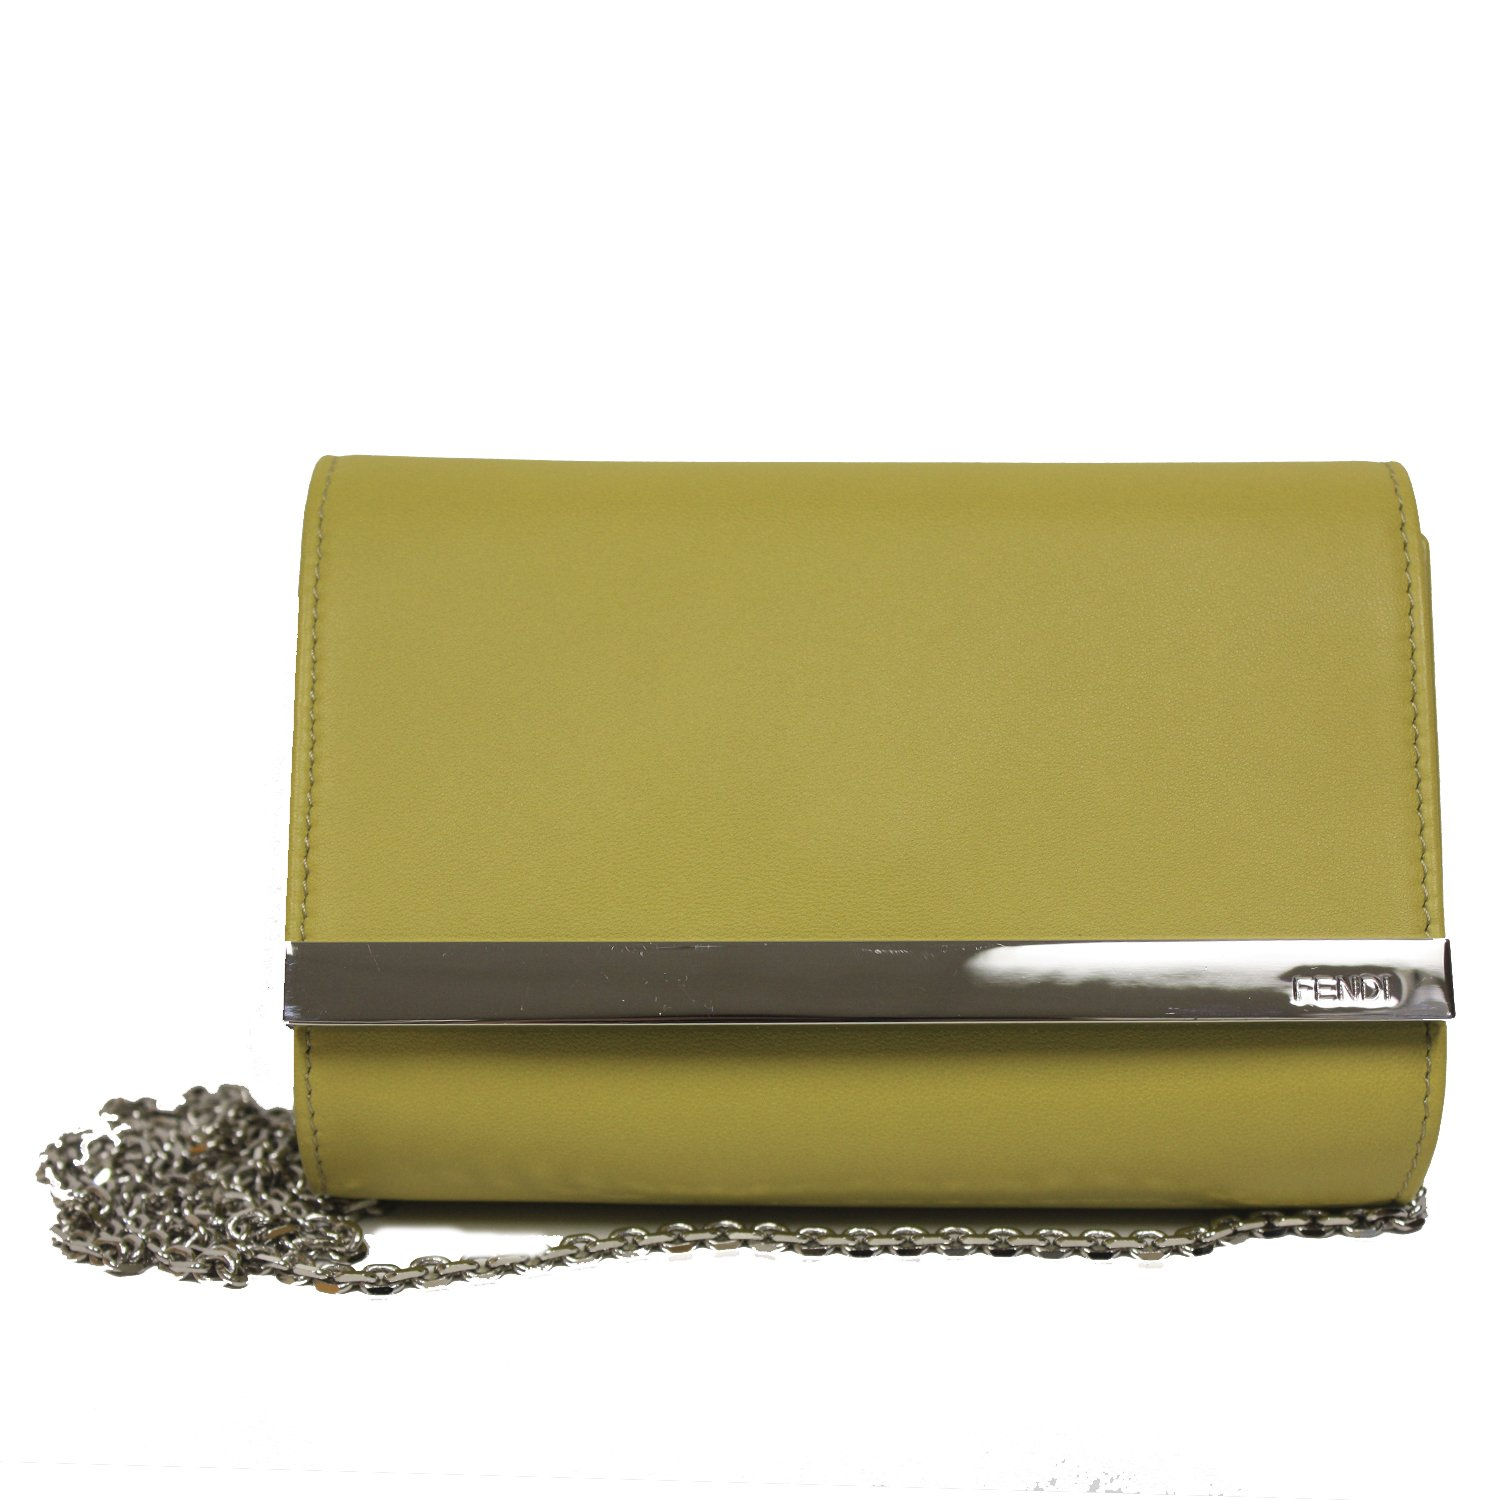 3c150a1fe04d FENDI Mini Rush Clutch Evening Bag Mustard Yellow Leather Chain Cross Body  Shoulder Handbag 8M0322  Handbags  Amazon.com